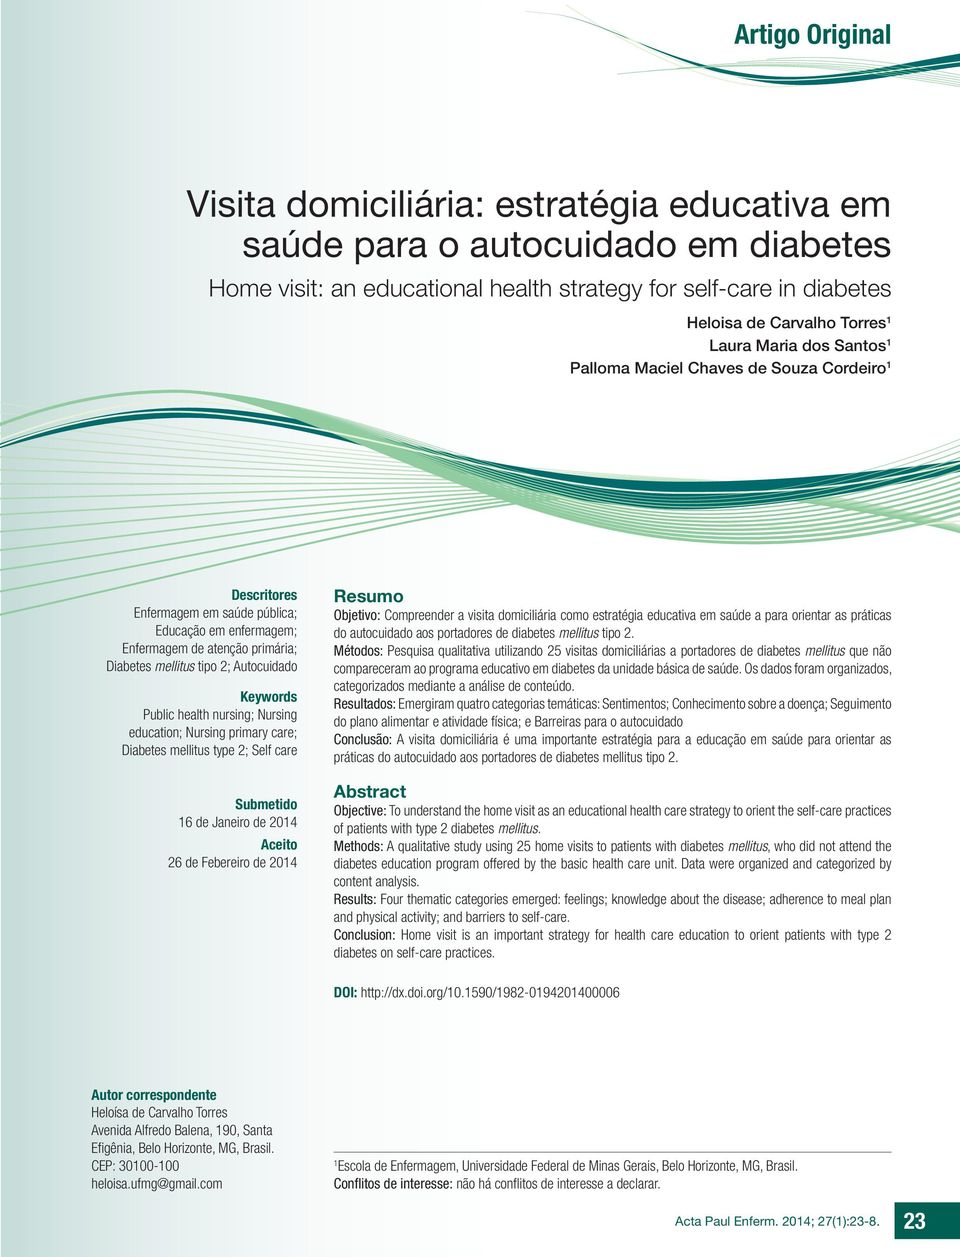 Autocuidado Keywords Public health nursing; Nursing education; Nursing primary care; Diabetes mellitus type 2; Self care Submetido 16 de Janeiro de 2014 Aceito 26 de Febereiro de 2014 Resumo